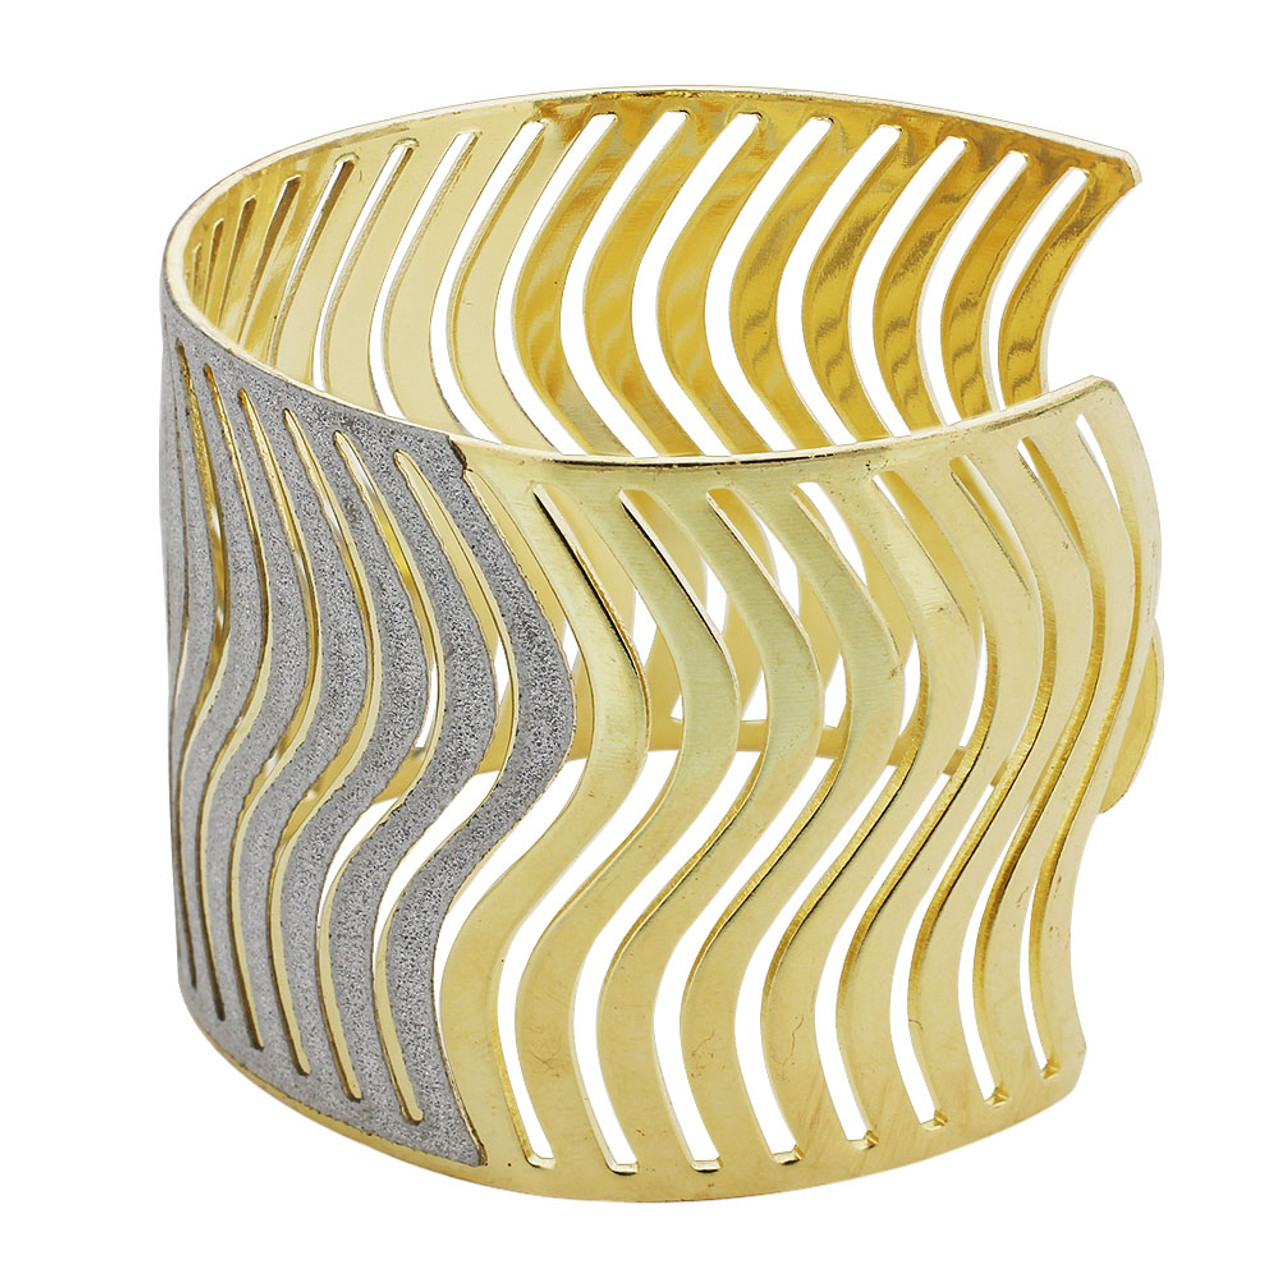 Gold Tone Paved Curvy Silver Dust Texture Cuff Bracelet